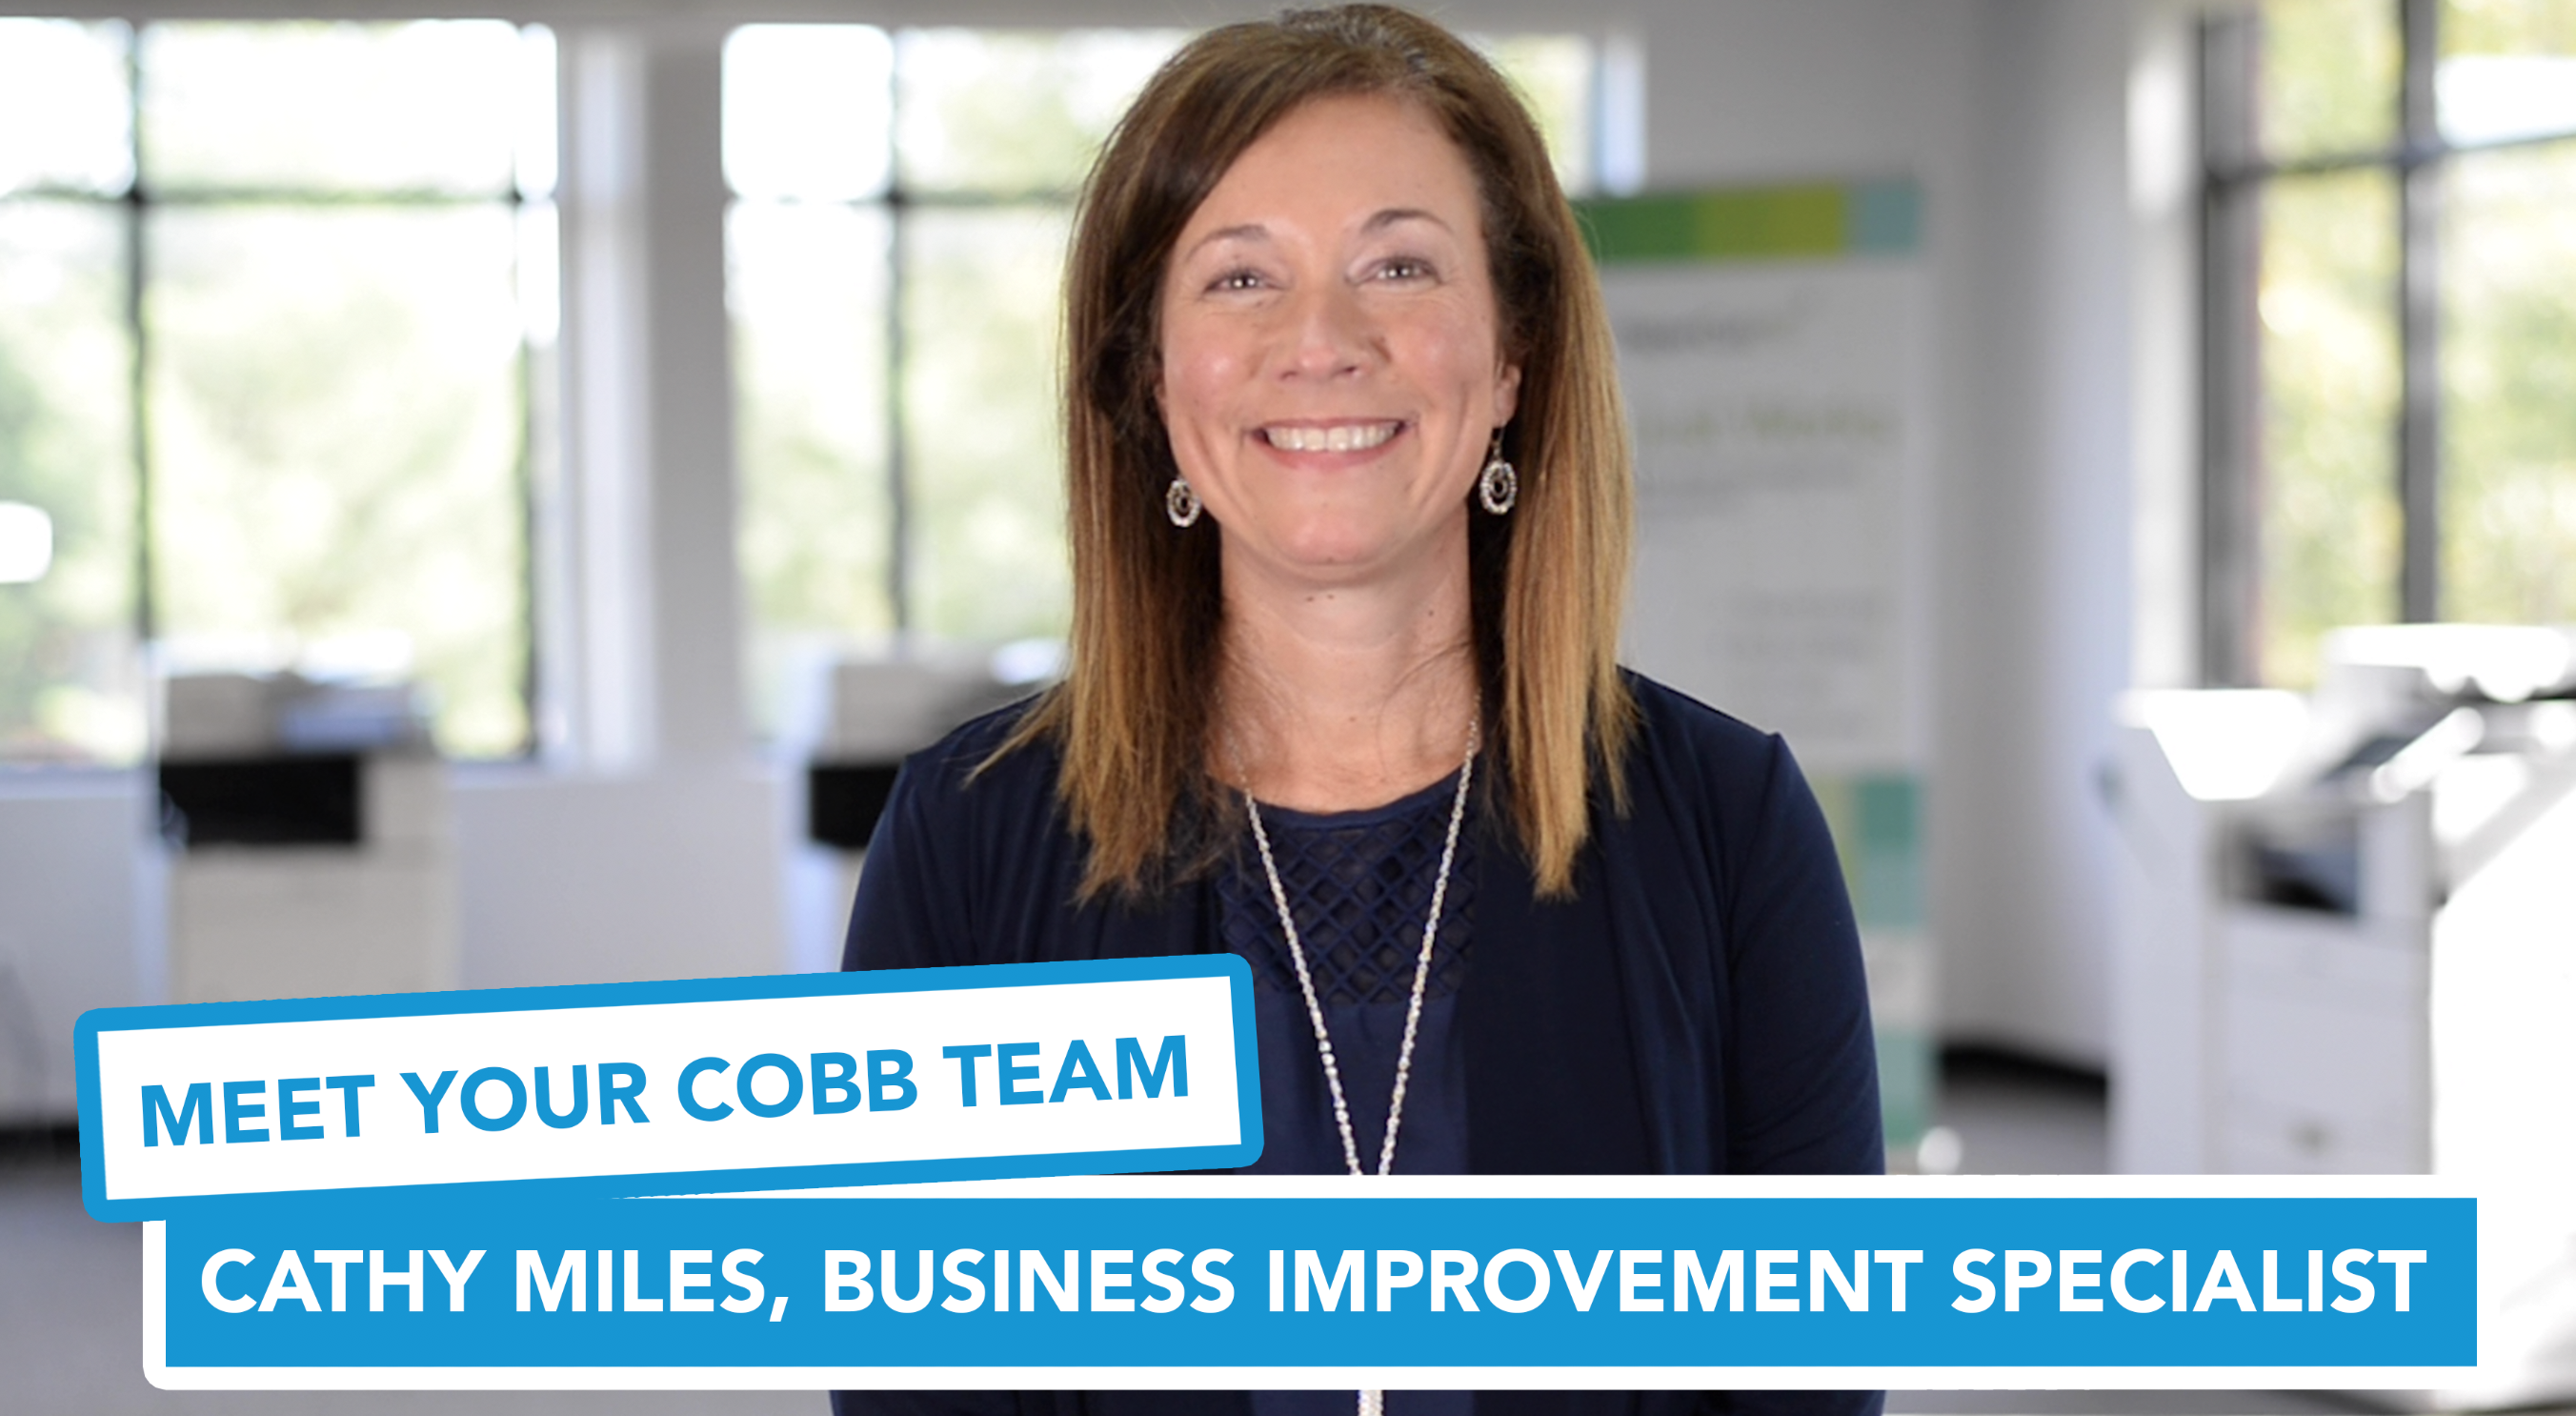 Meet Your Cobb Team Cathy Miles, Business Improvement Specialist